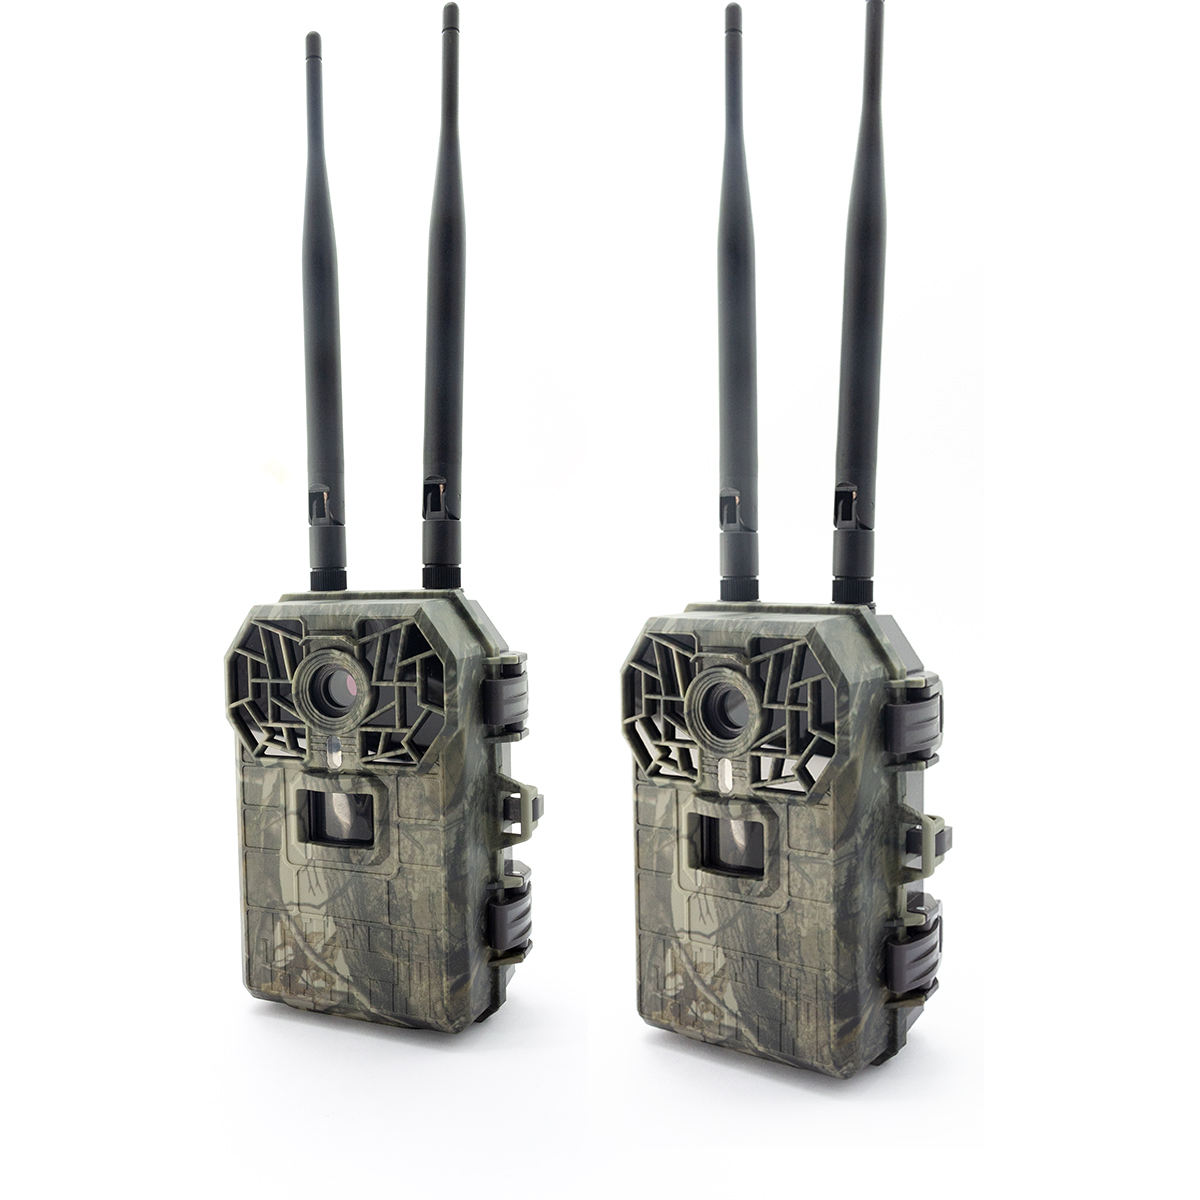 2020 New infrared security weapons wireless outdoor battery powered 4G Trail hunting Camera Factory guns and weapons army